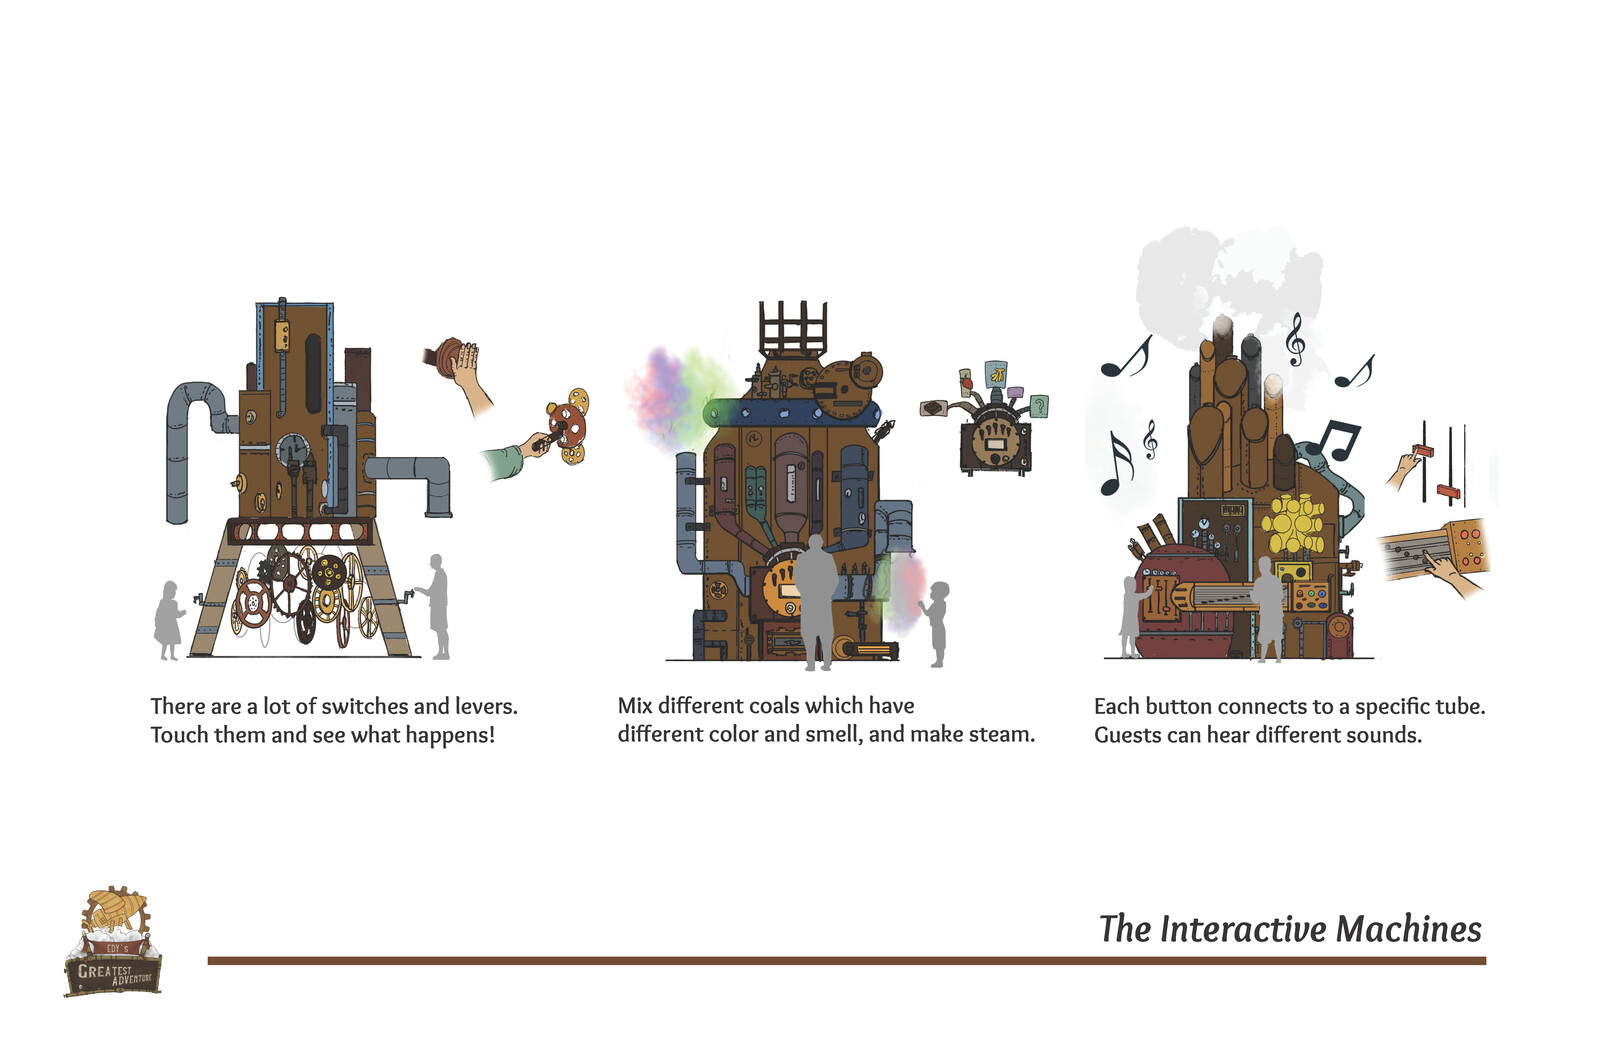 Interactive Machines